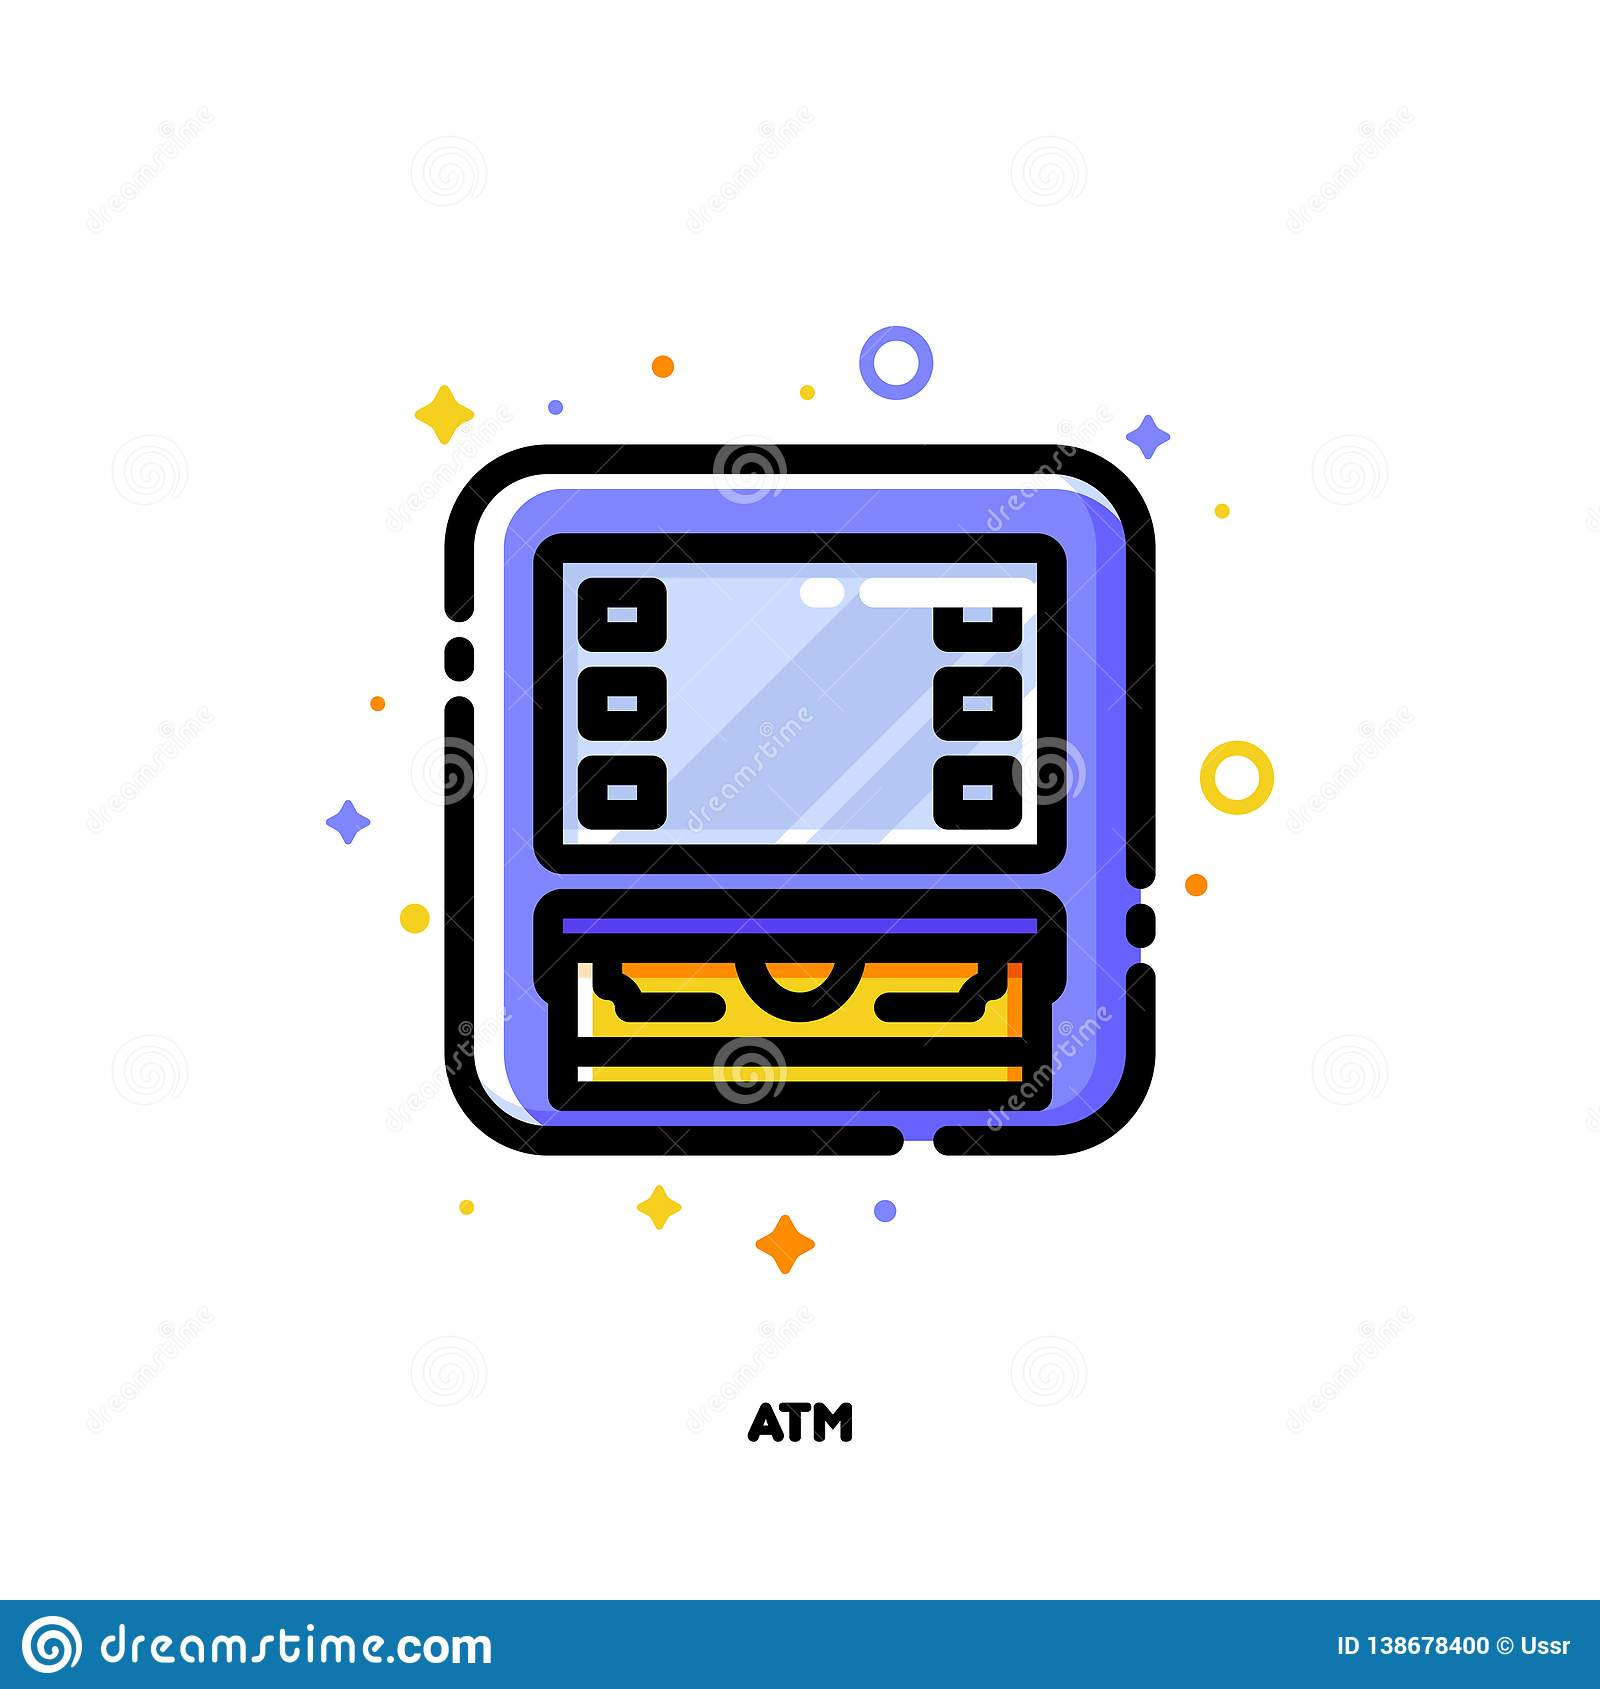 Icon Of ATM Machine For Banking Concept  Flat Filled Outline